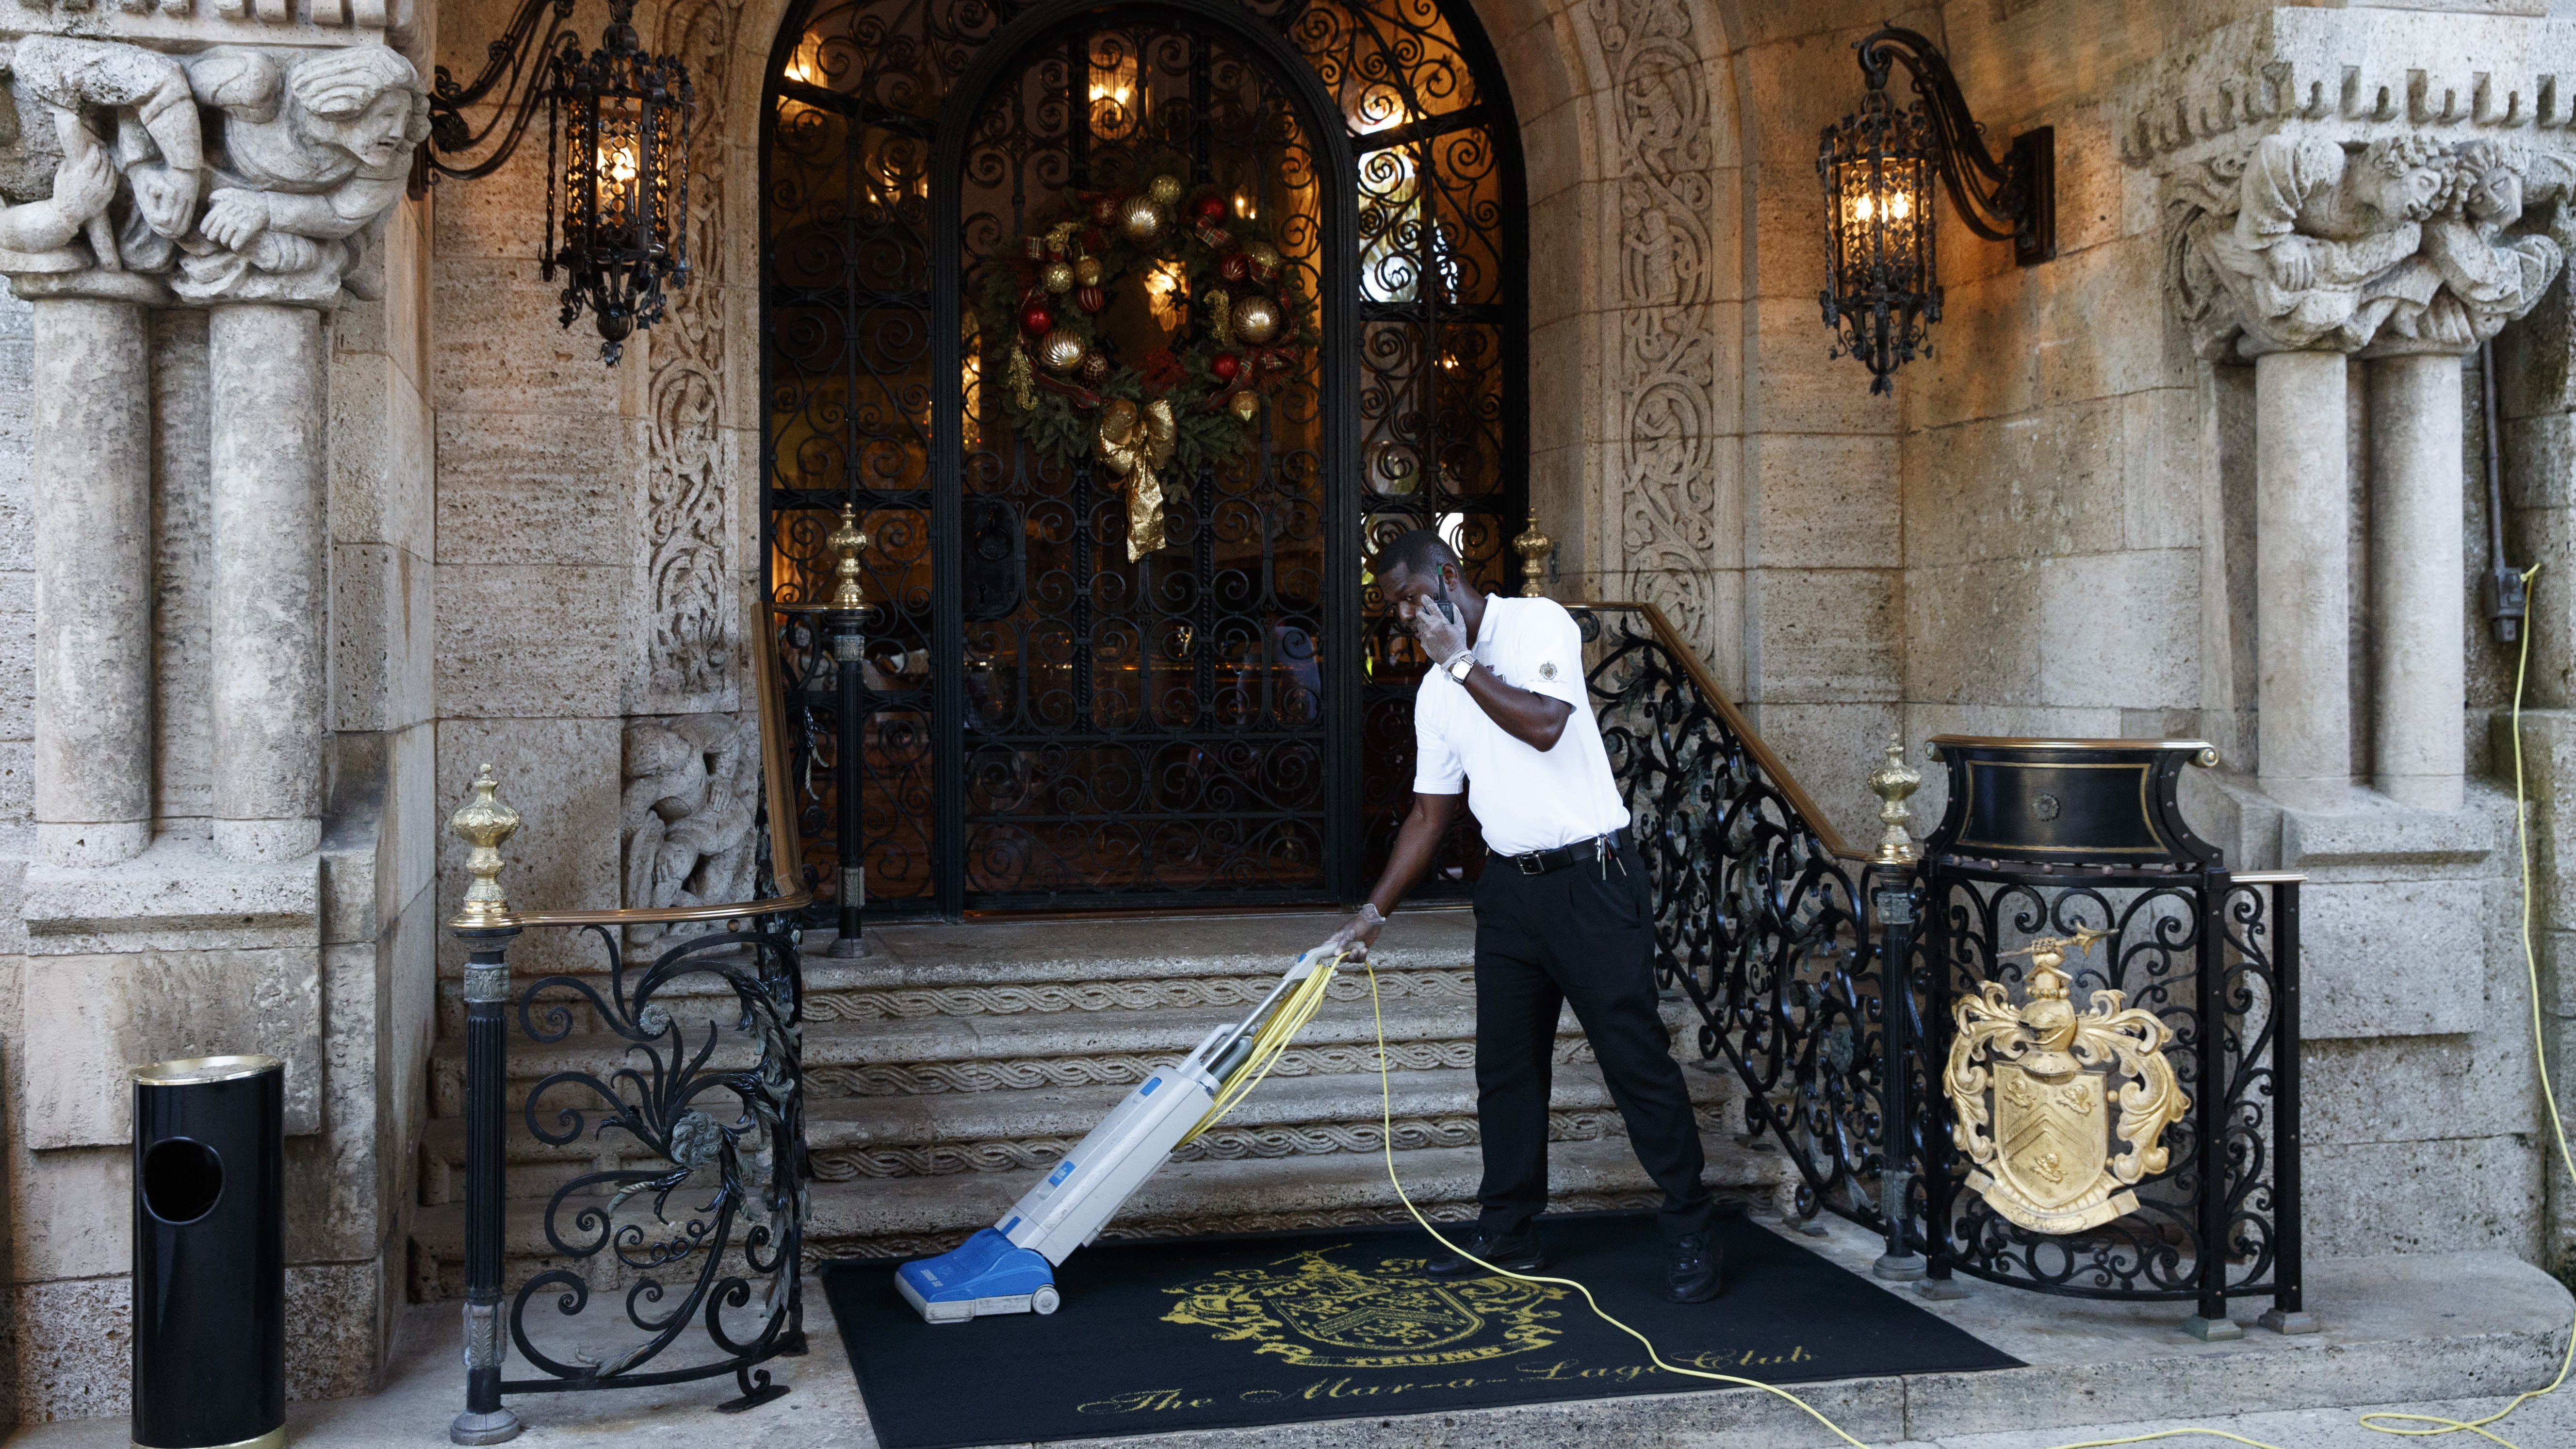 A worker vacuums the rug at the entrance to Mar-a-Lago